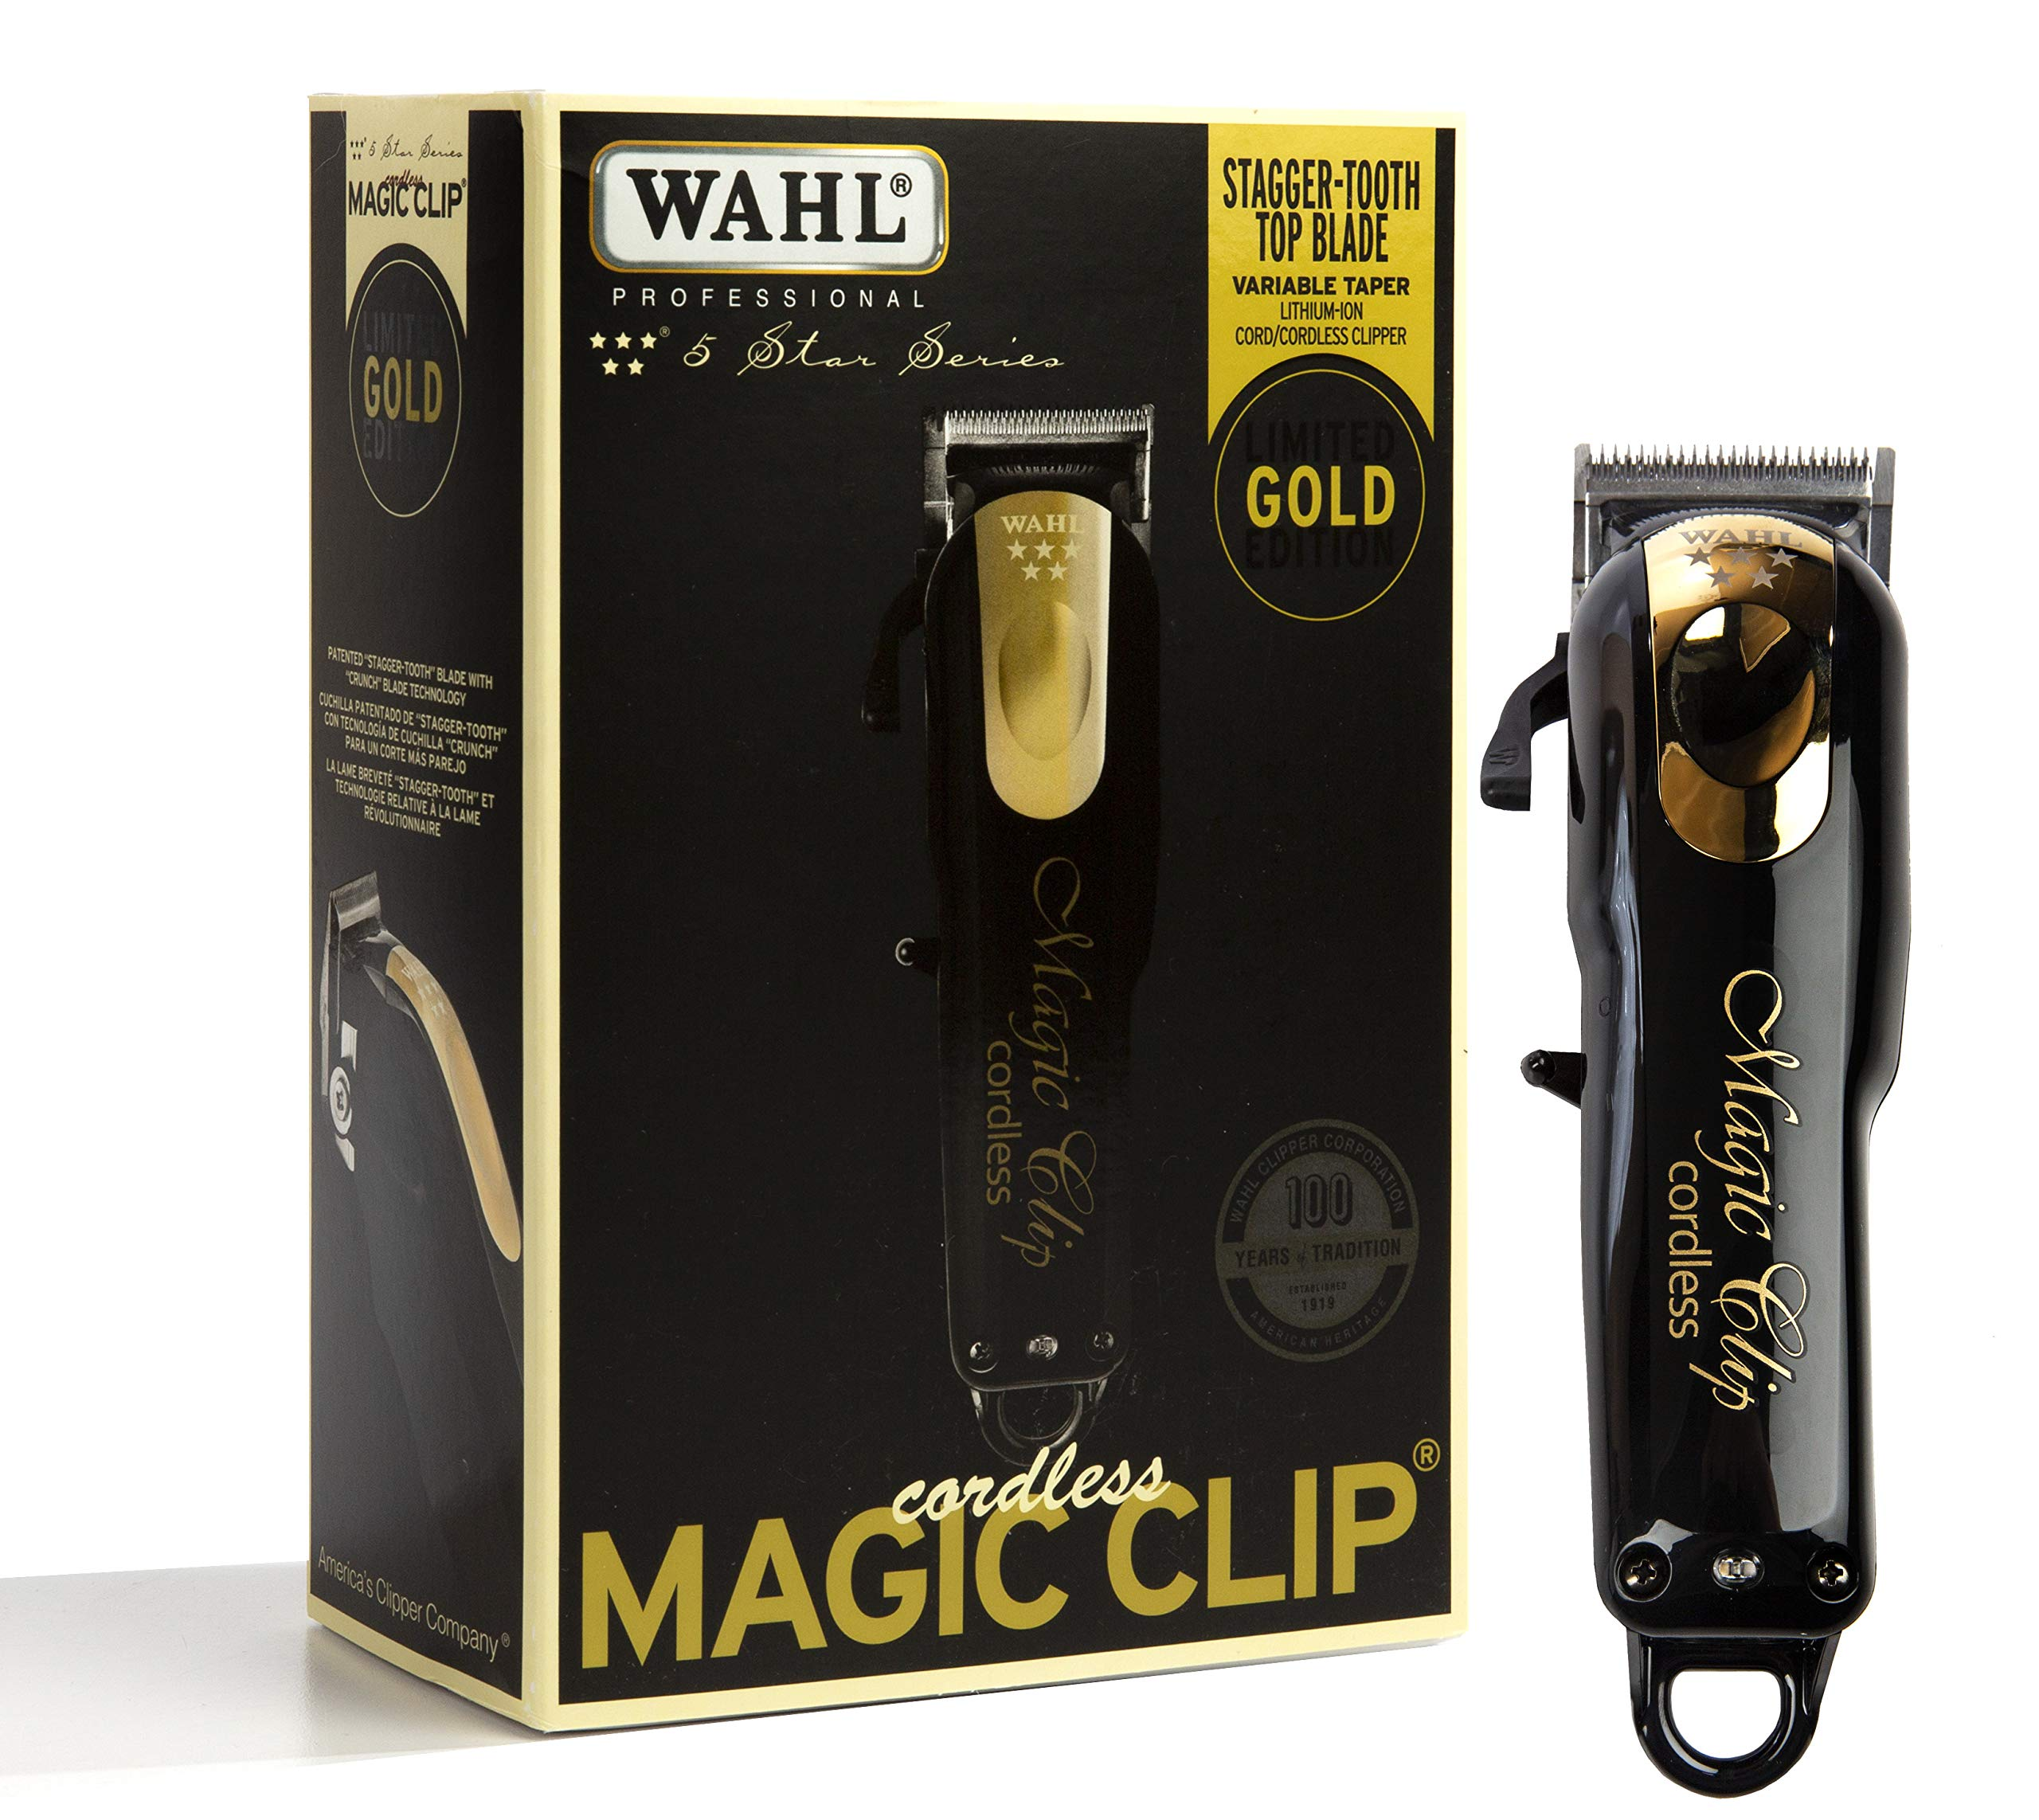 Wahl Professional 5 Star Limited Edition Gold Cordless Magic Clip #8148, Black, 1 Count